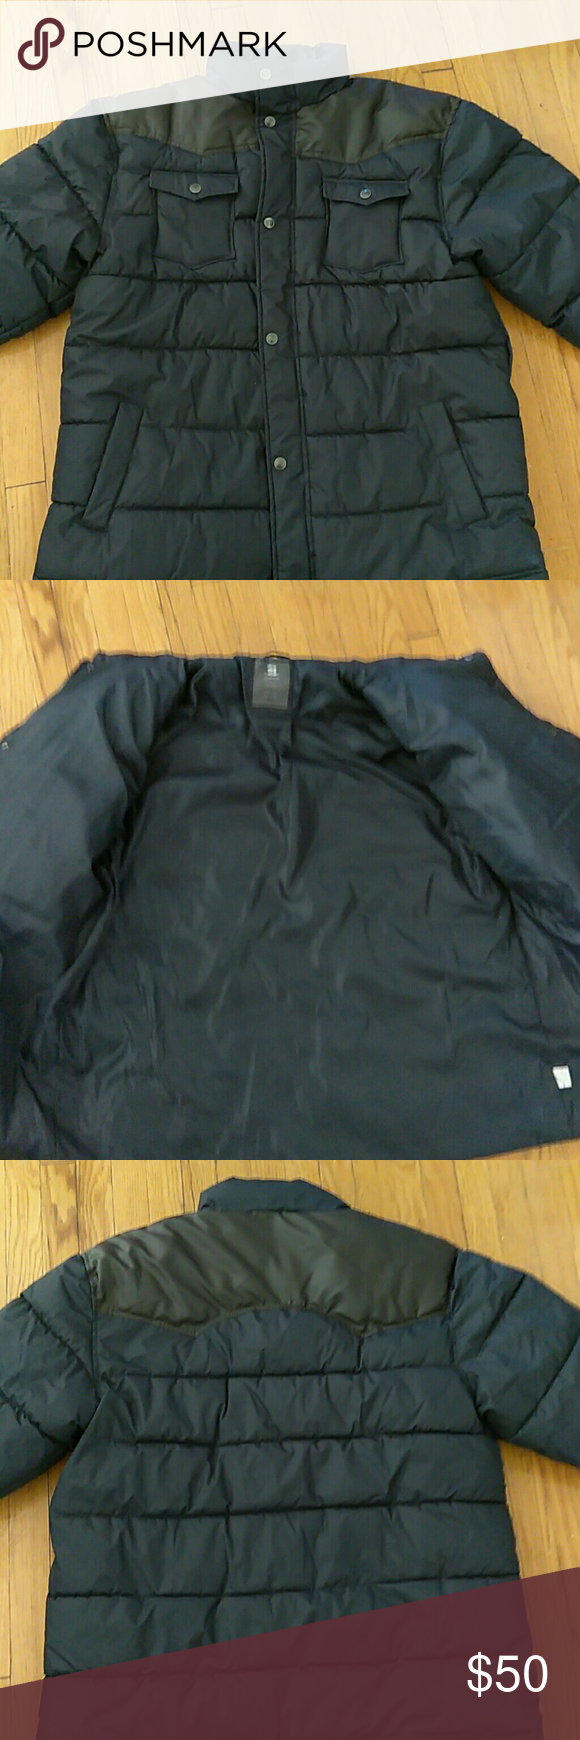 Mens 3xl Puffer Excellent Condition Men S Navy And Brown Puffer Jackets Coats Puffers Navy And Brown Puffer Puffer Jackets [ 1740 x 580 Pixel ]